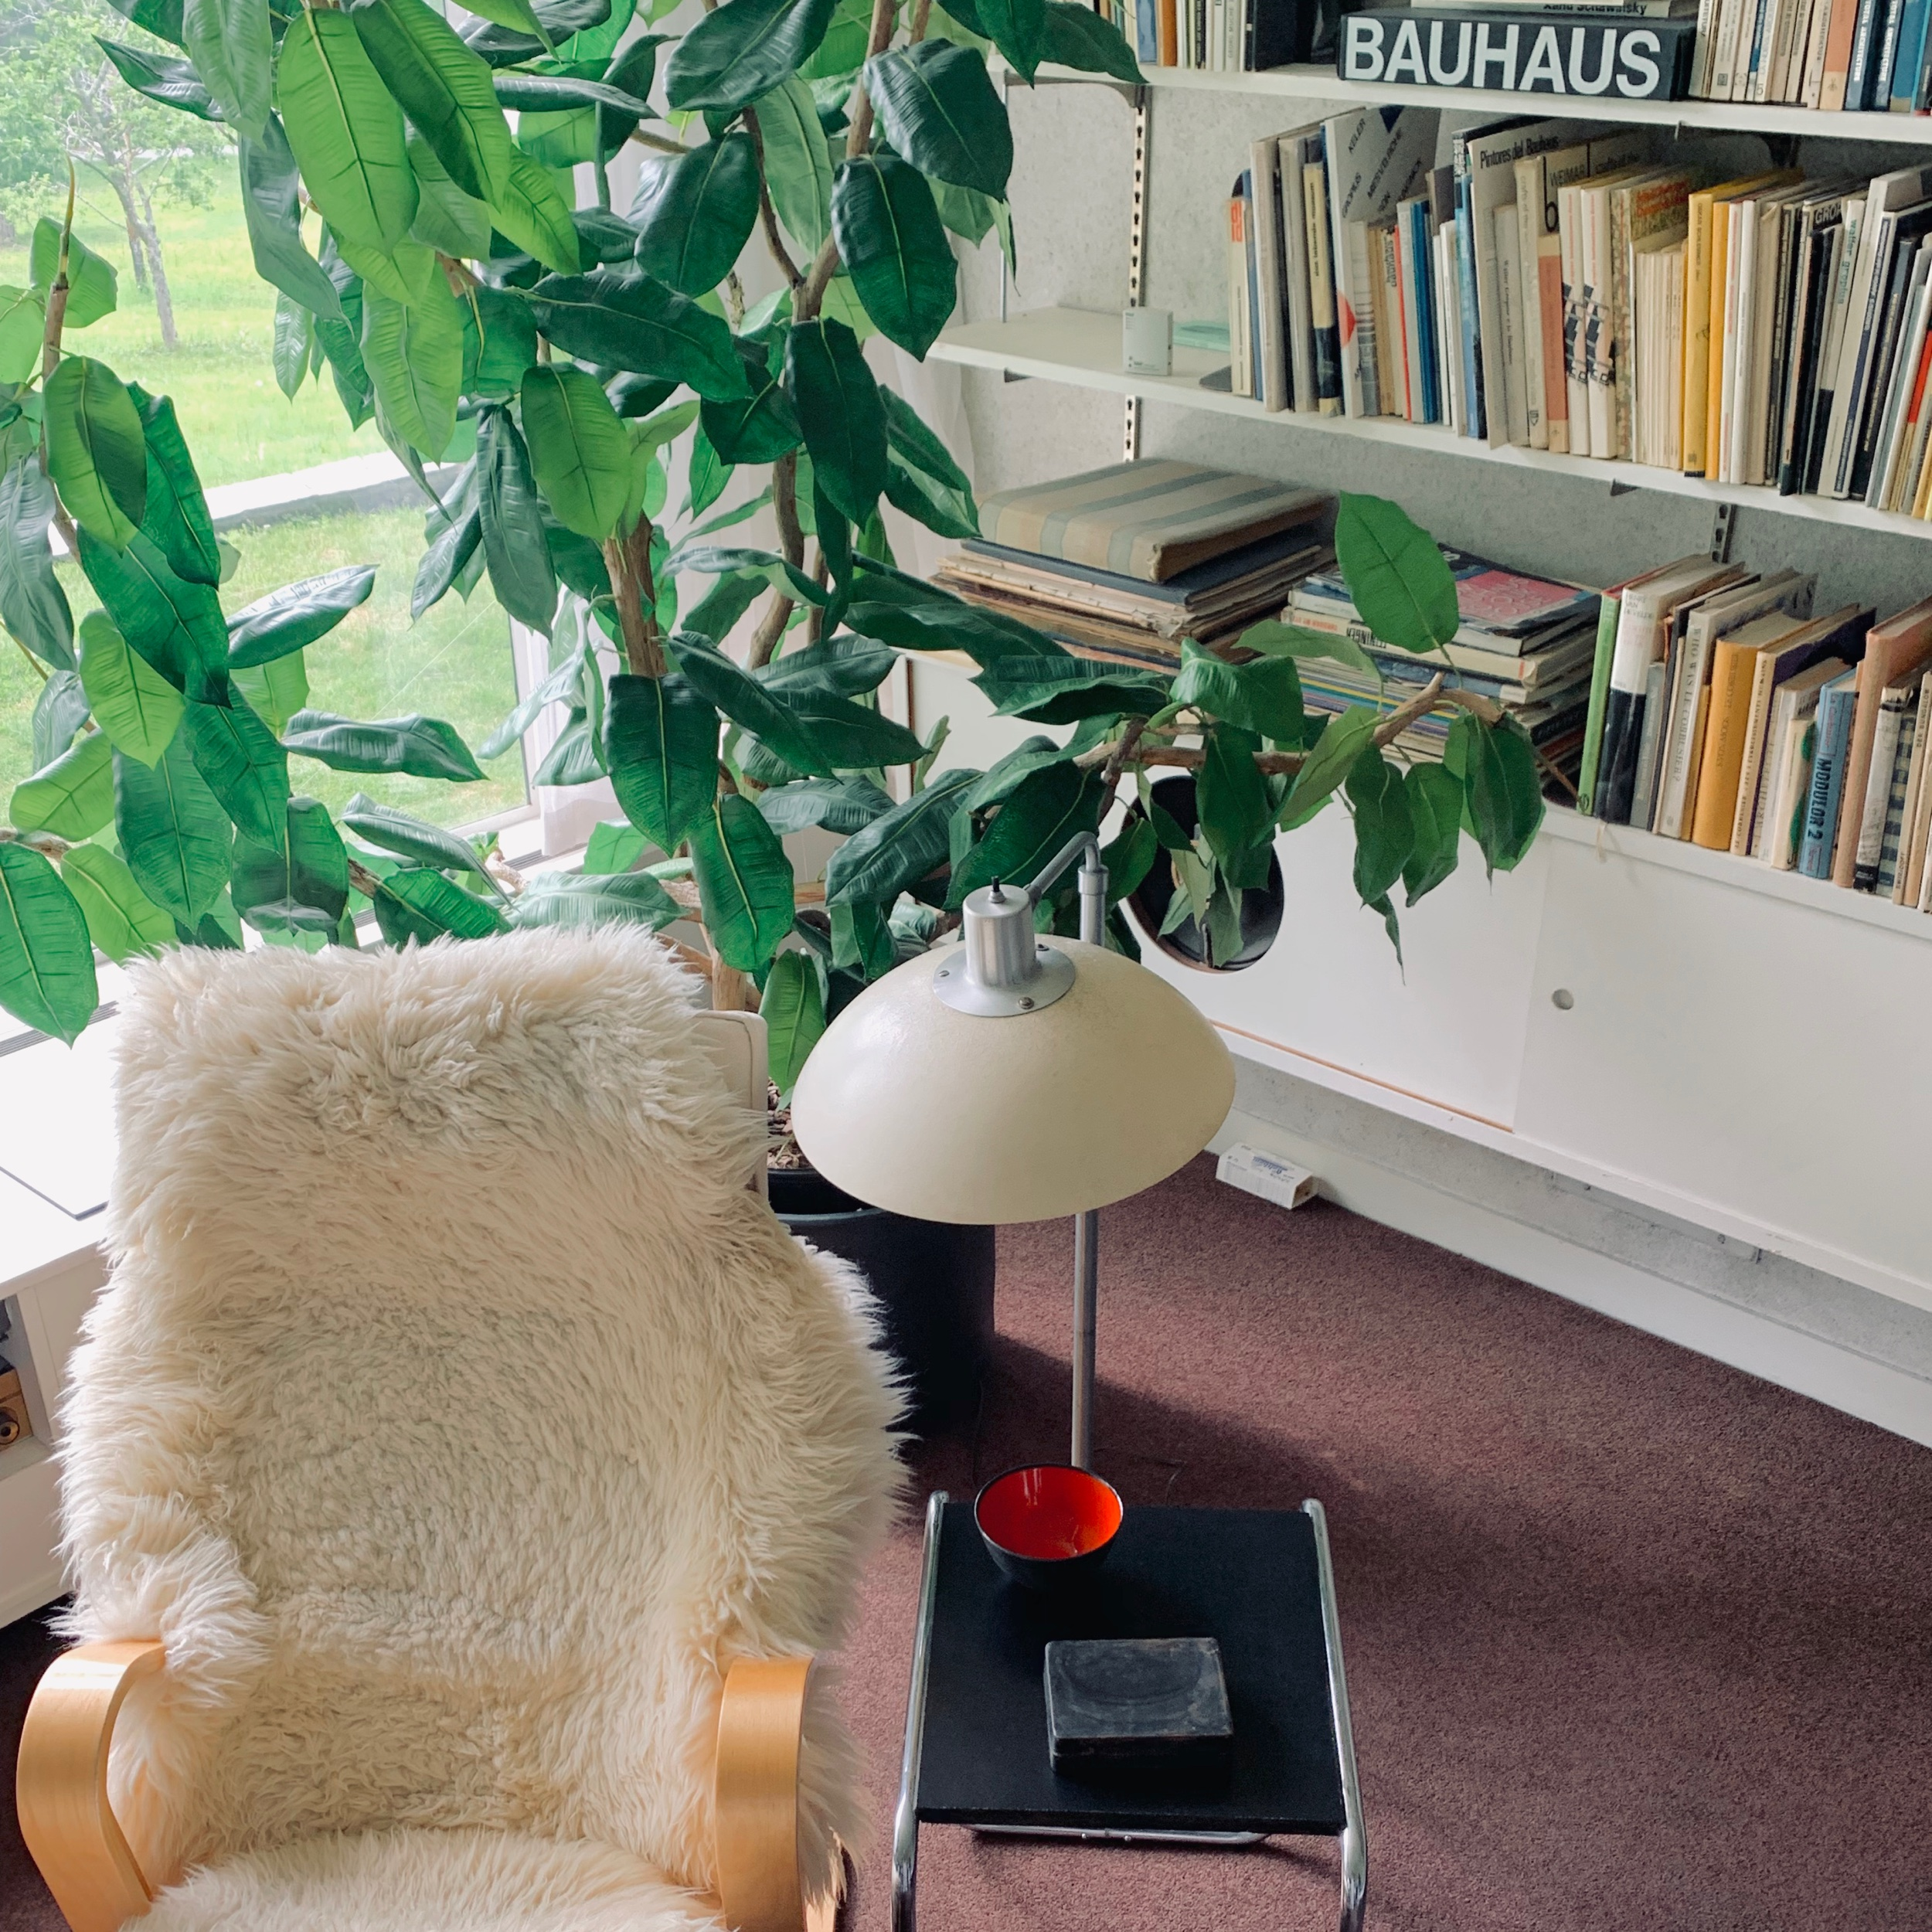 Furniture by Saarinen and Marcel Breuer in the Library. Breuer partially received his inspiration of metal tube as furniture construction from bicycle designs.